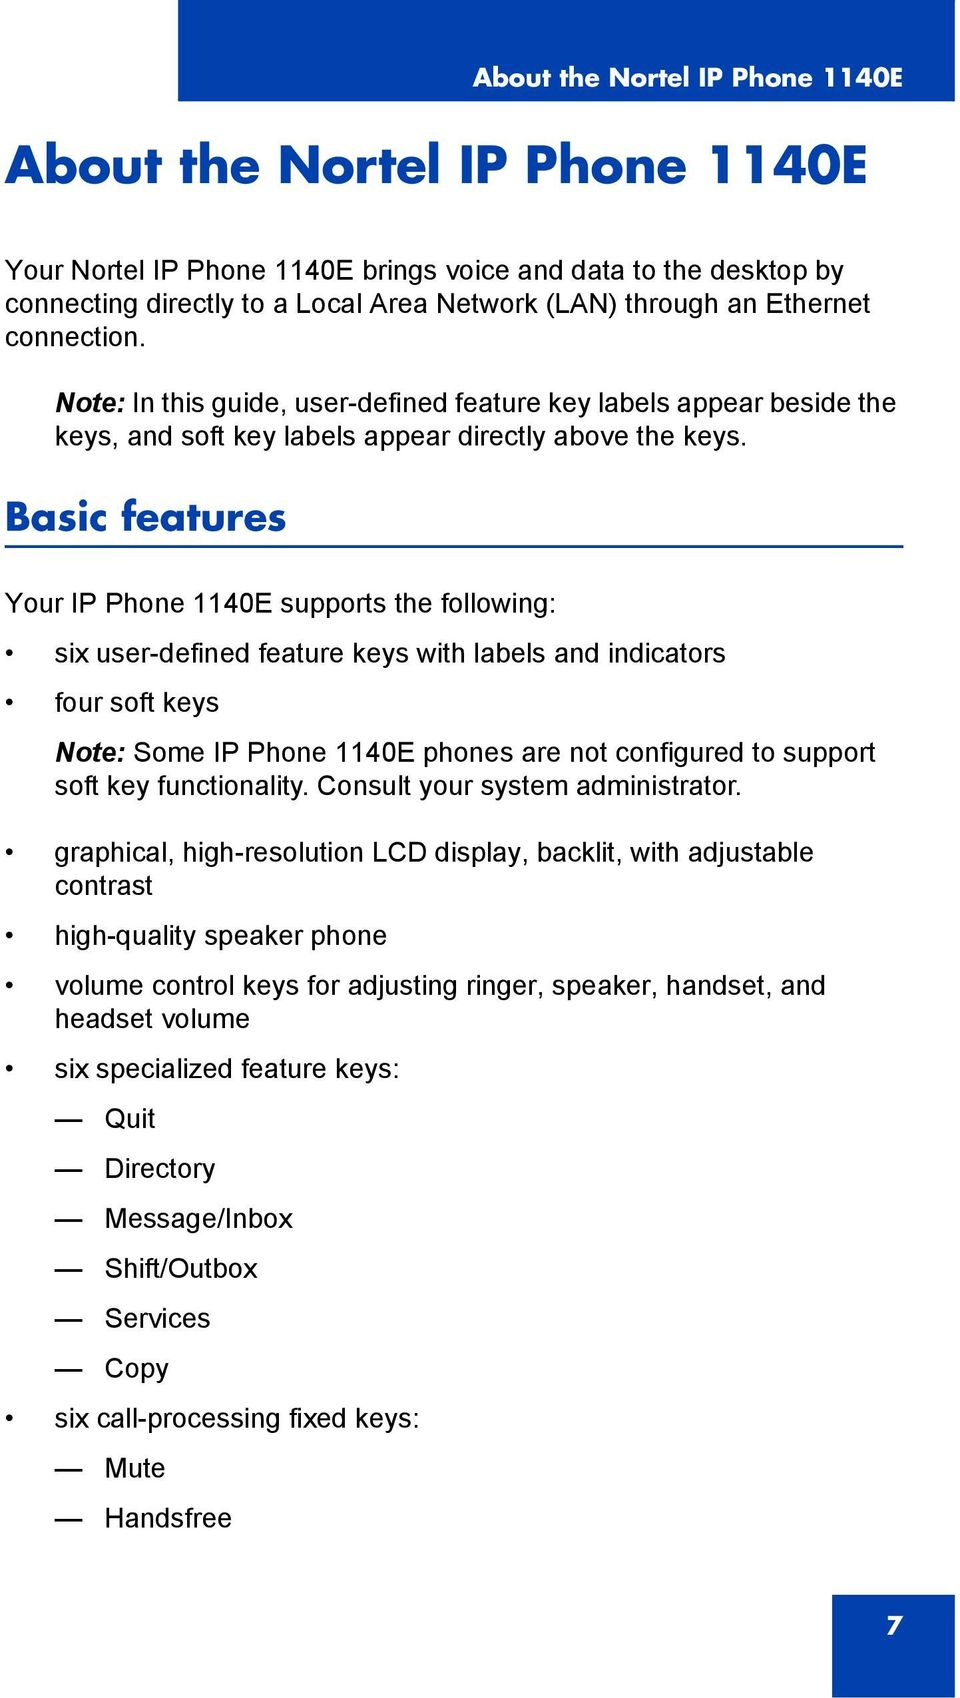 Basic features Your IP Phone 1140E supports the following: six user-defined feature keys with labels and indicators four soft keys Note: Some IP Phone 1140E phones are not configured to support soft